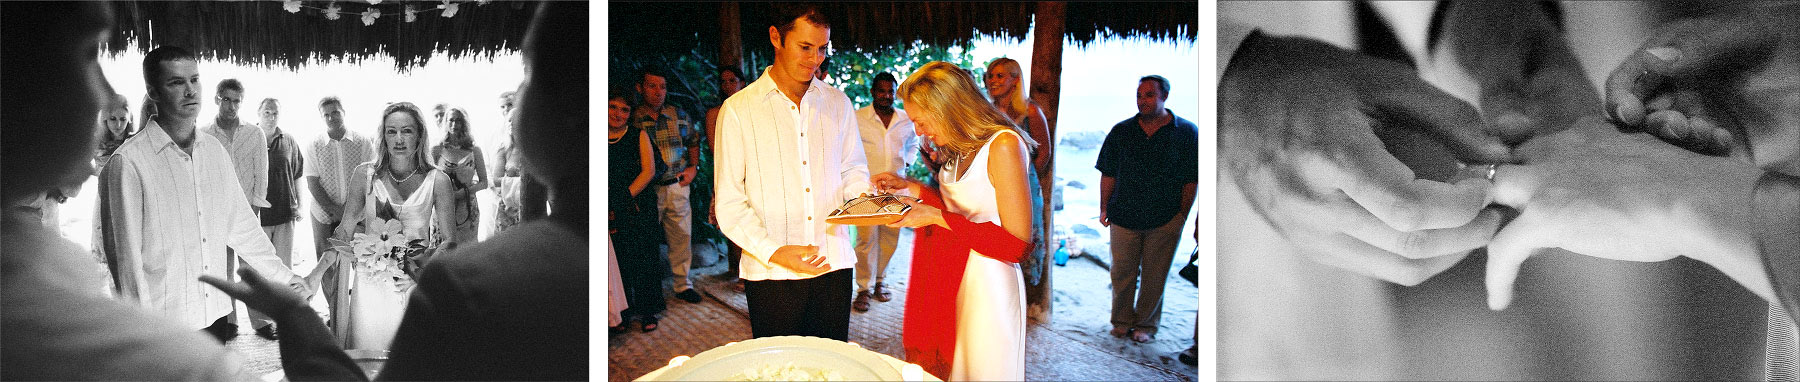 Wedding_Sayulita_Mexico_30_31_32